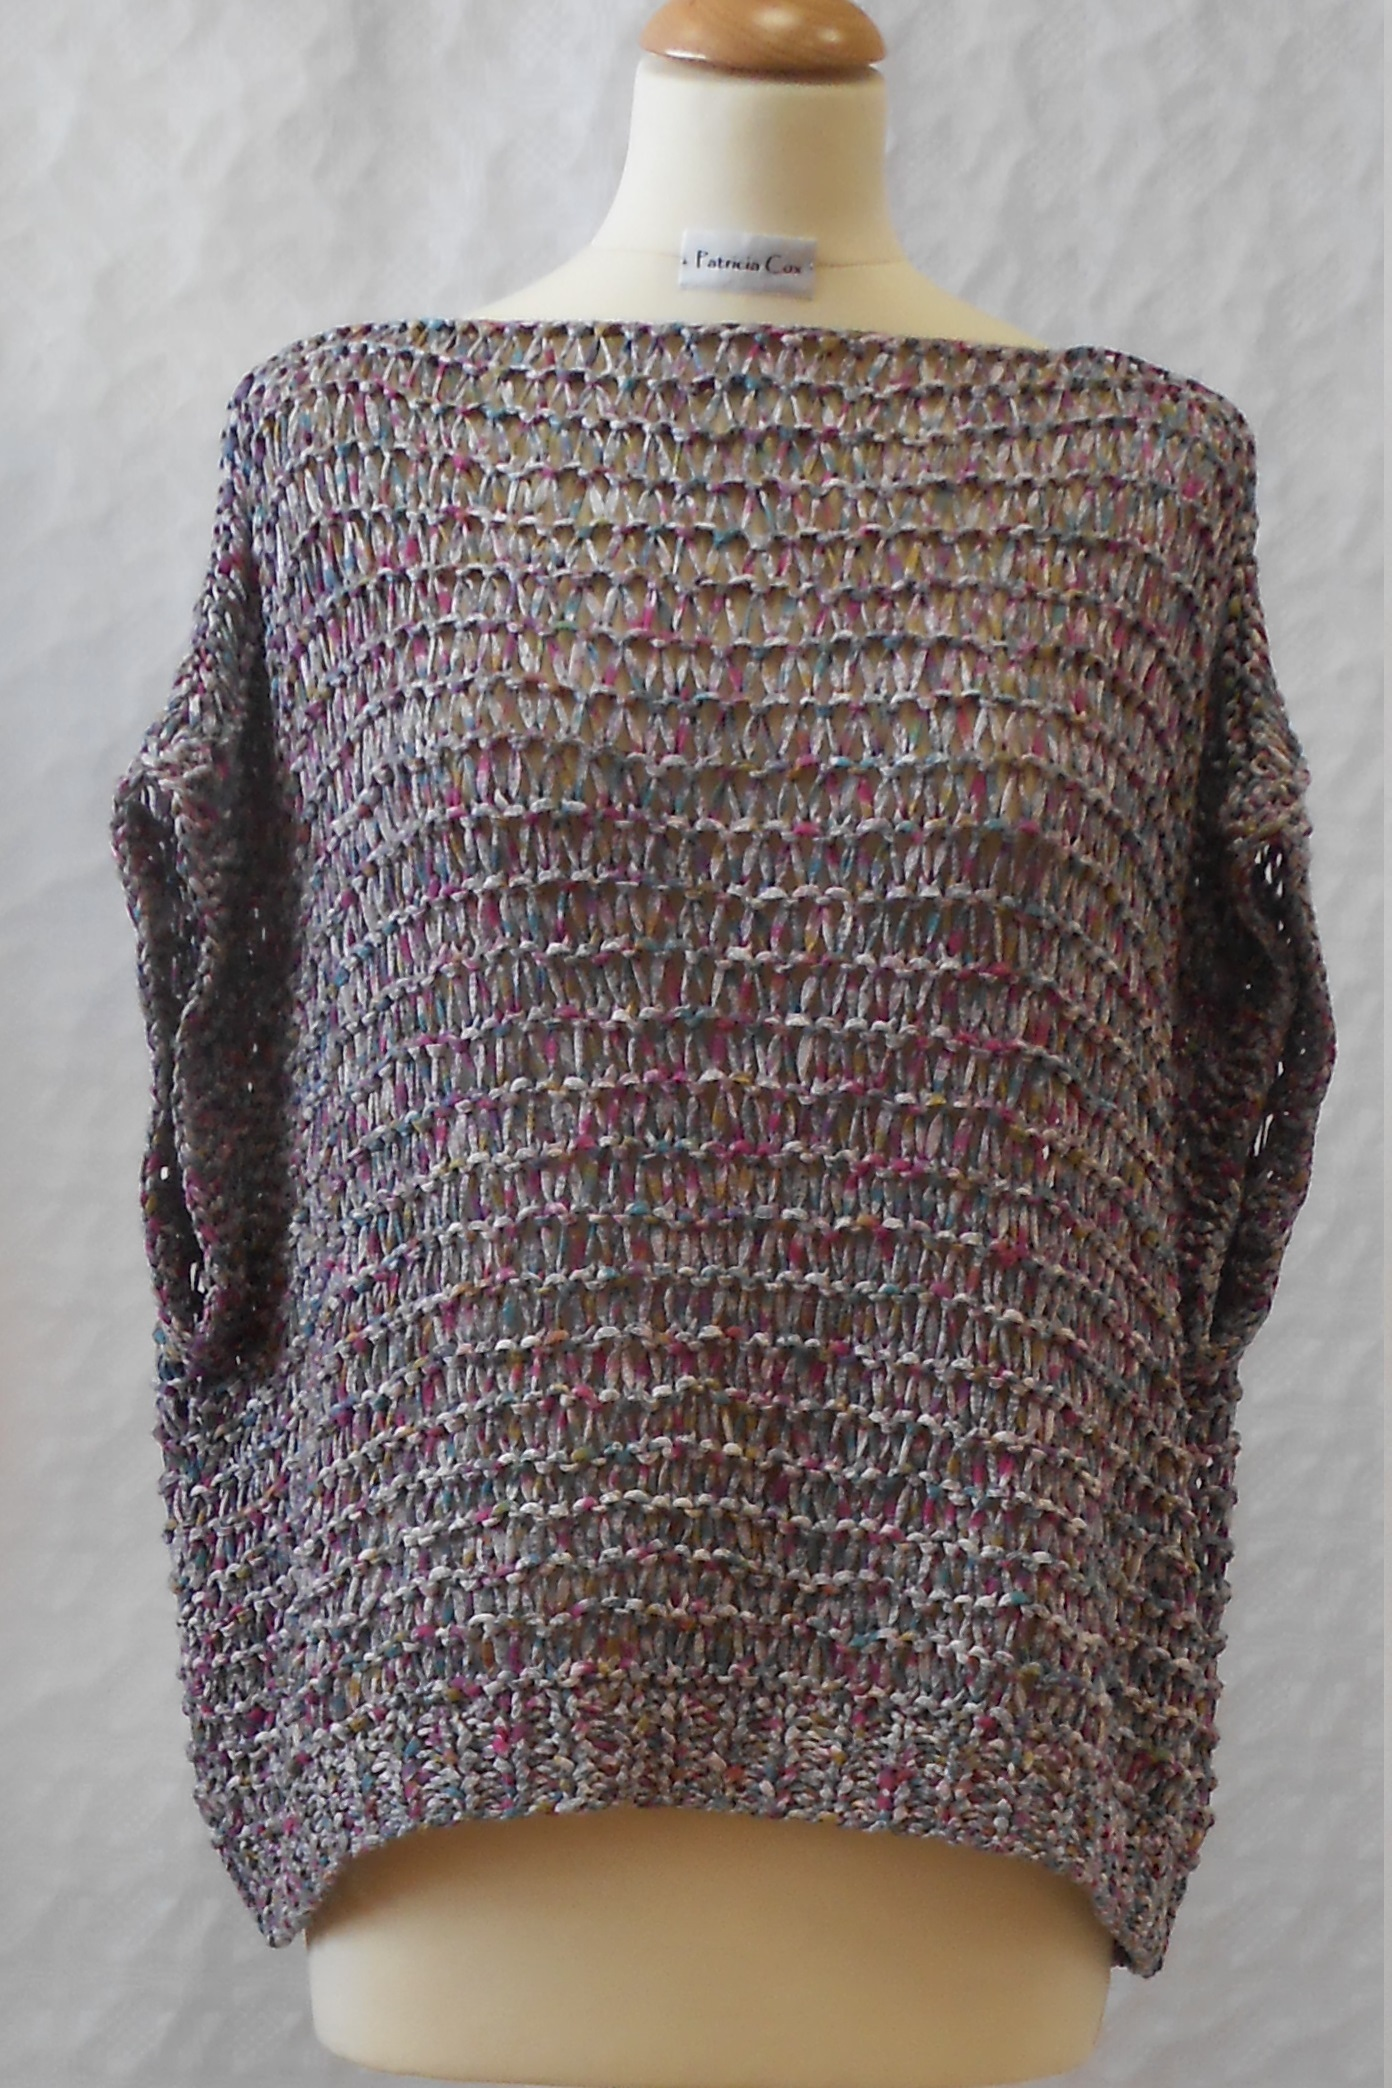 Year Round - oversized summer tee shirt and sweater knitting pattern